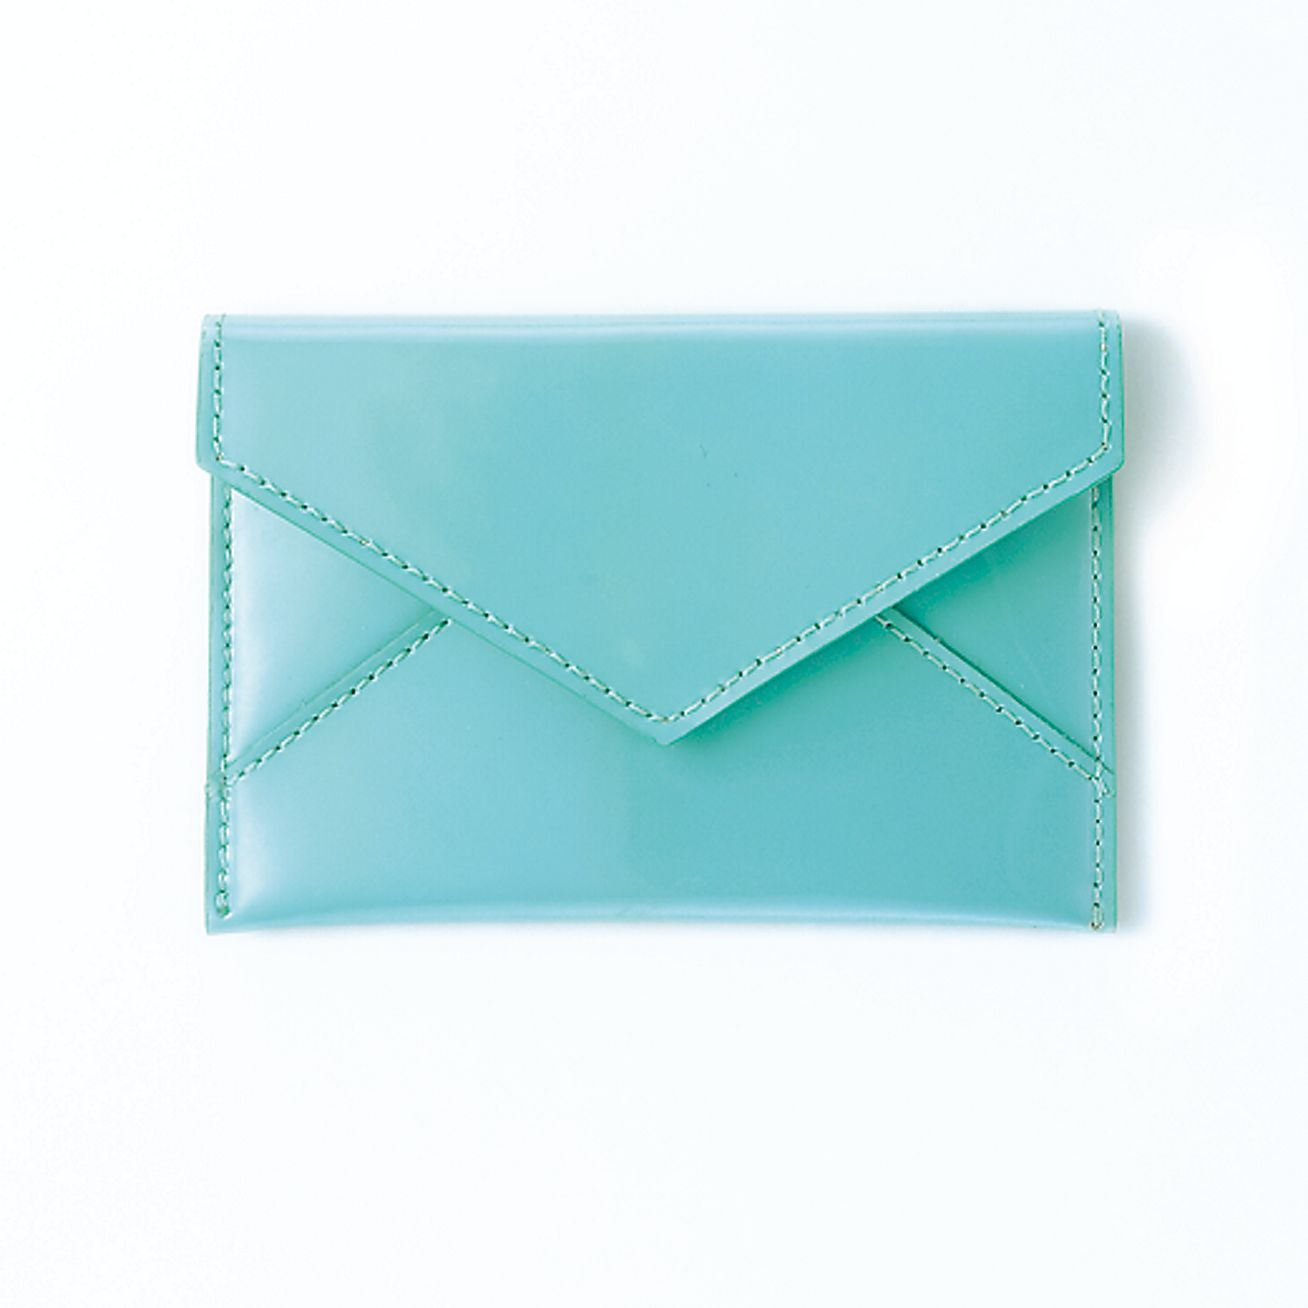 Tiffany bluer patent leather business card case tiffany for Tiffany and co business card holder